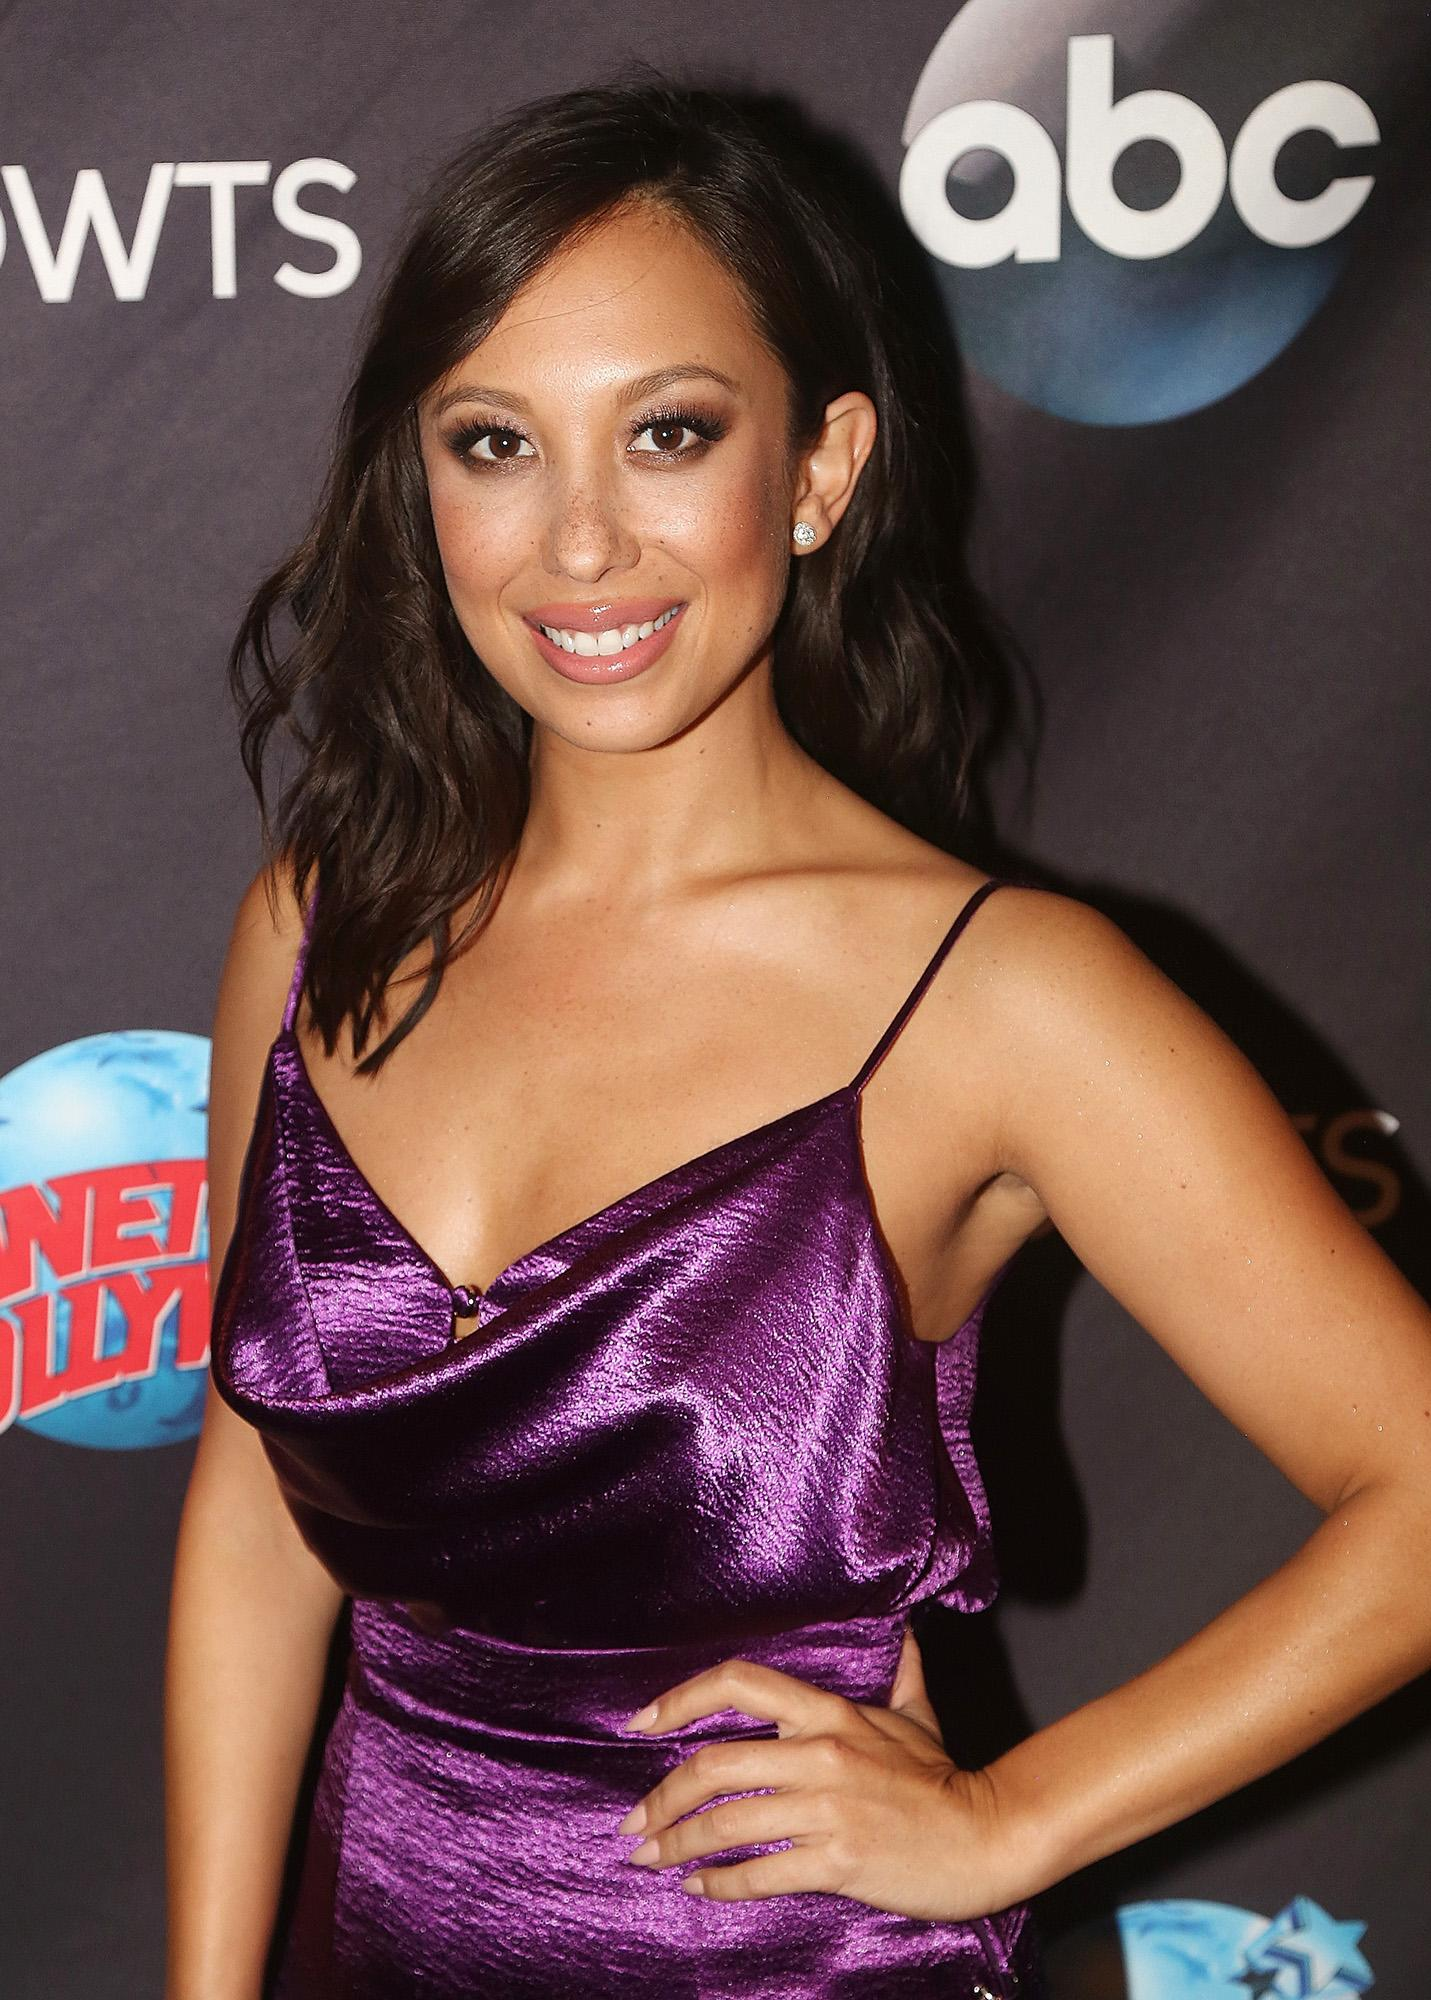 Uu U 2018 >> Cheryl Burke Quits Social Media: 'I'm Dealing with Some Personal Things Right Now'